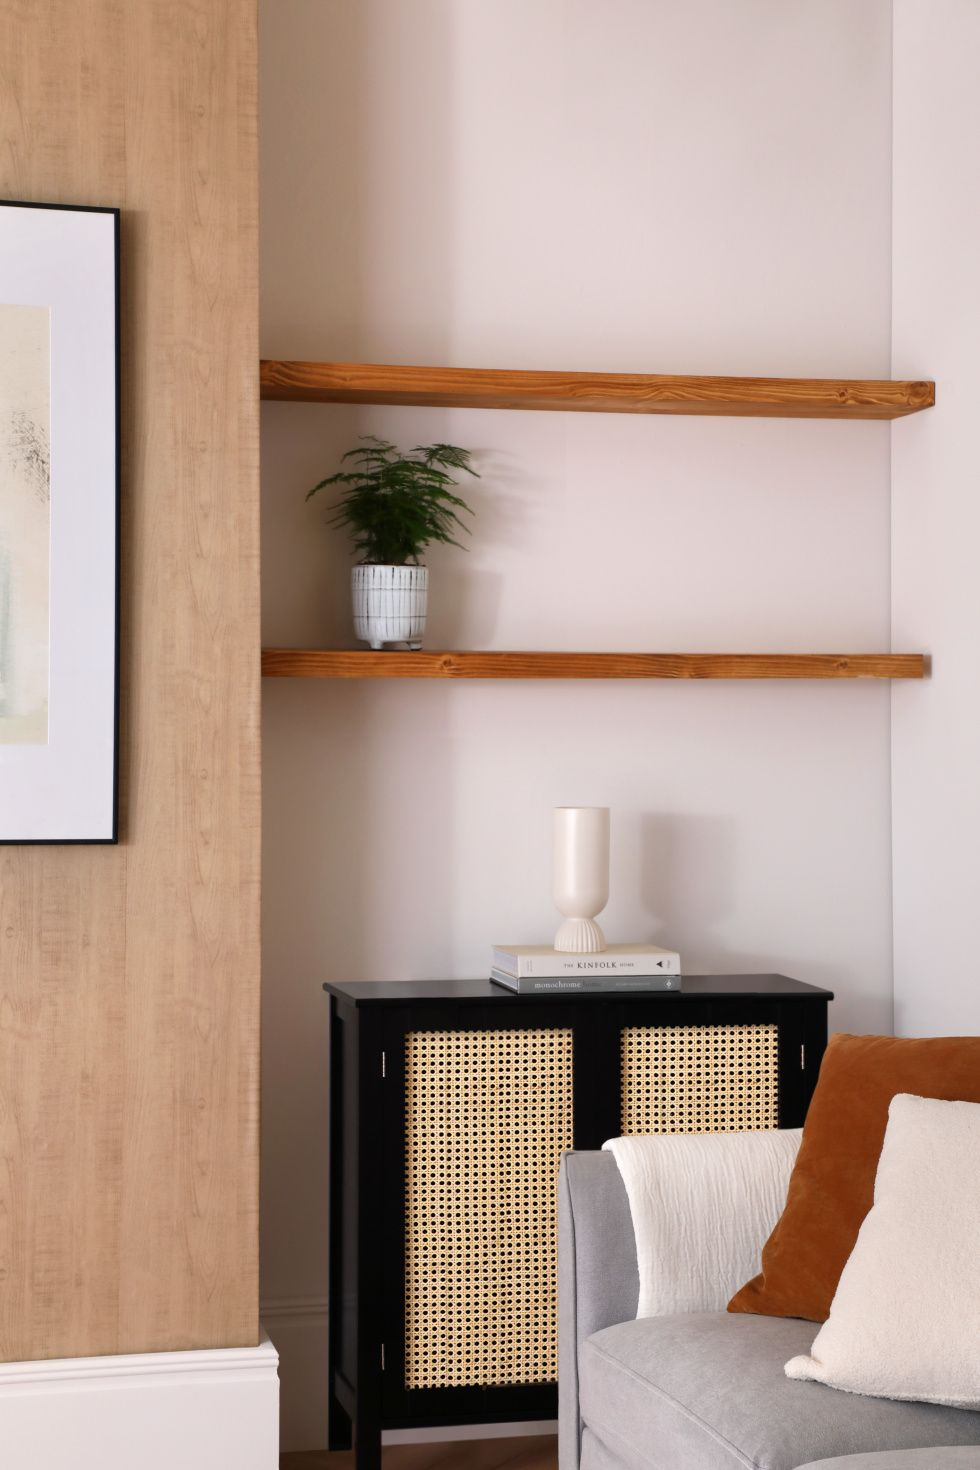 Modern living room with a potted plant on the wooden shelf